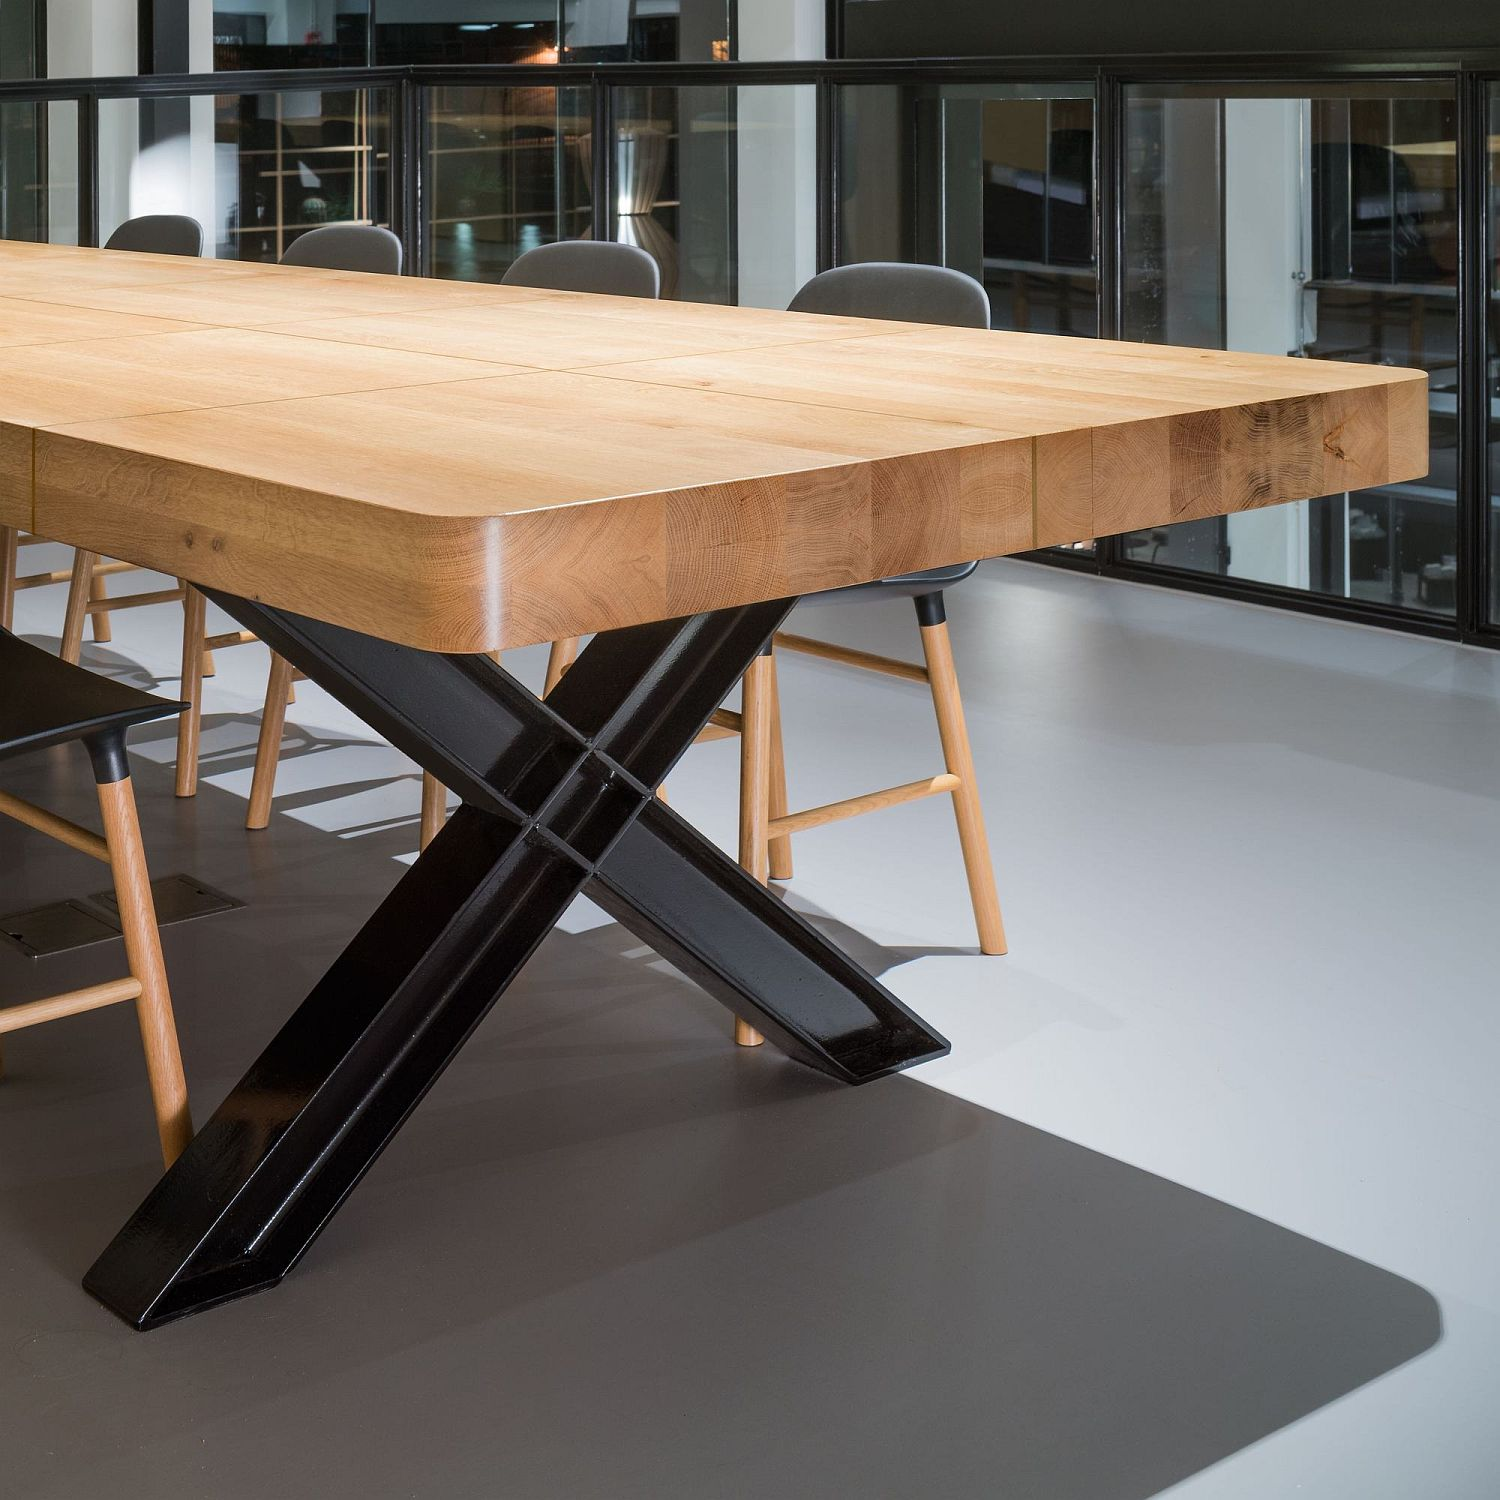 Wooden-dining-tables-with-metallic-base